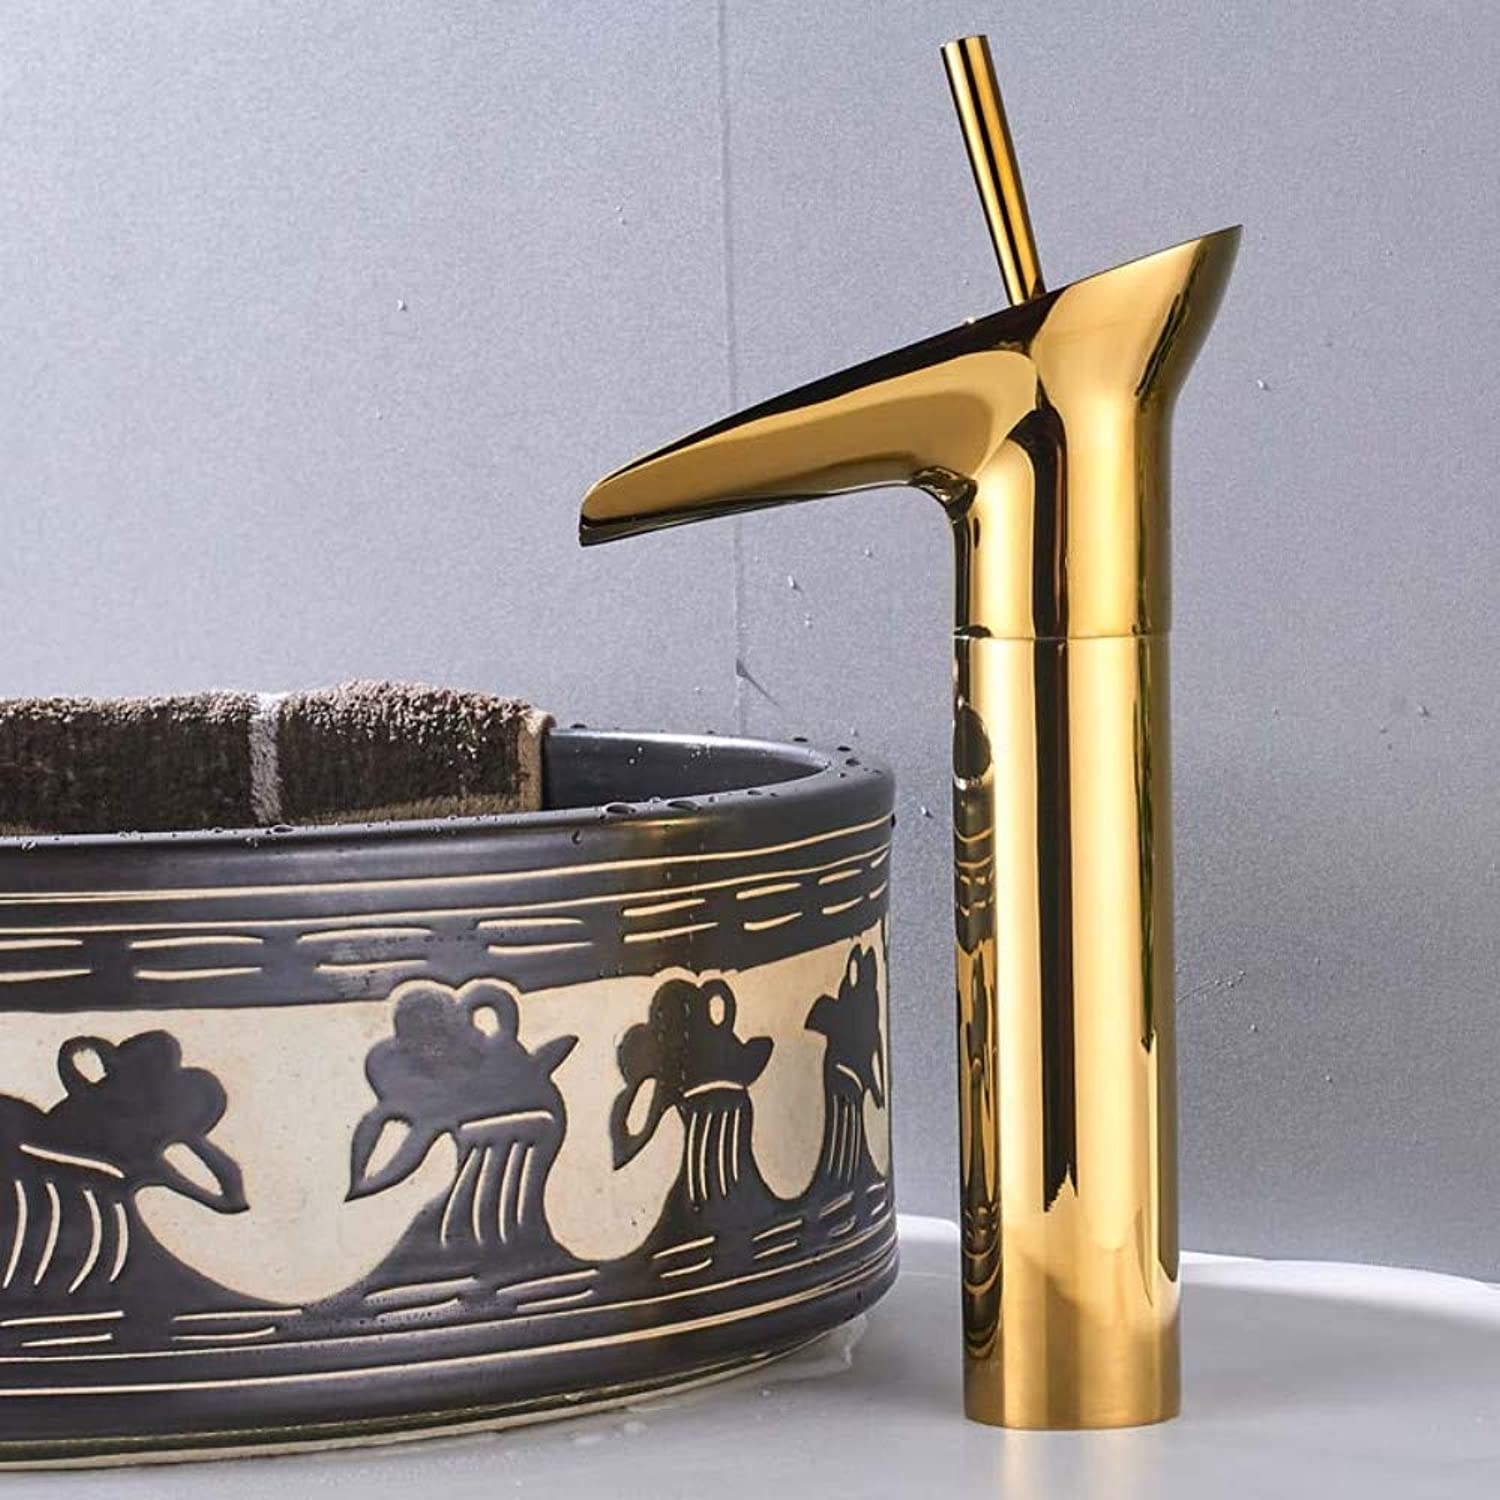 Bathroom Sink Tap golden Waterfall Spout Basin Faucet Deck Mounted Single Handle Bathroom Vessel Sink Mixer Tap One Hole Hot Cold Water Tap